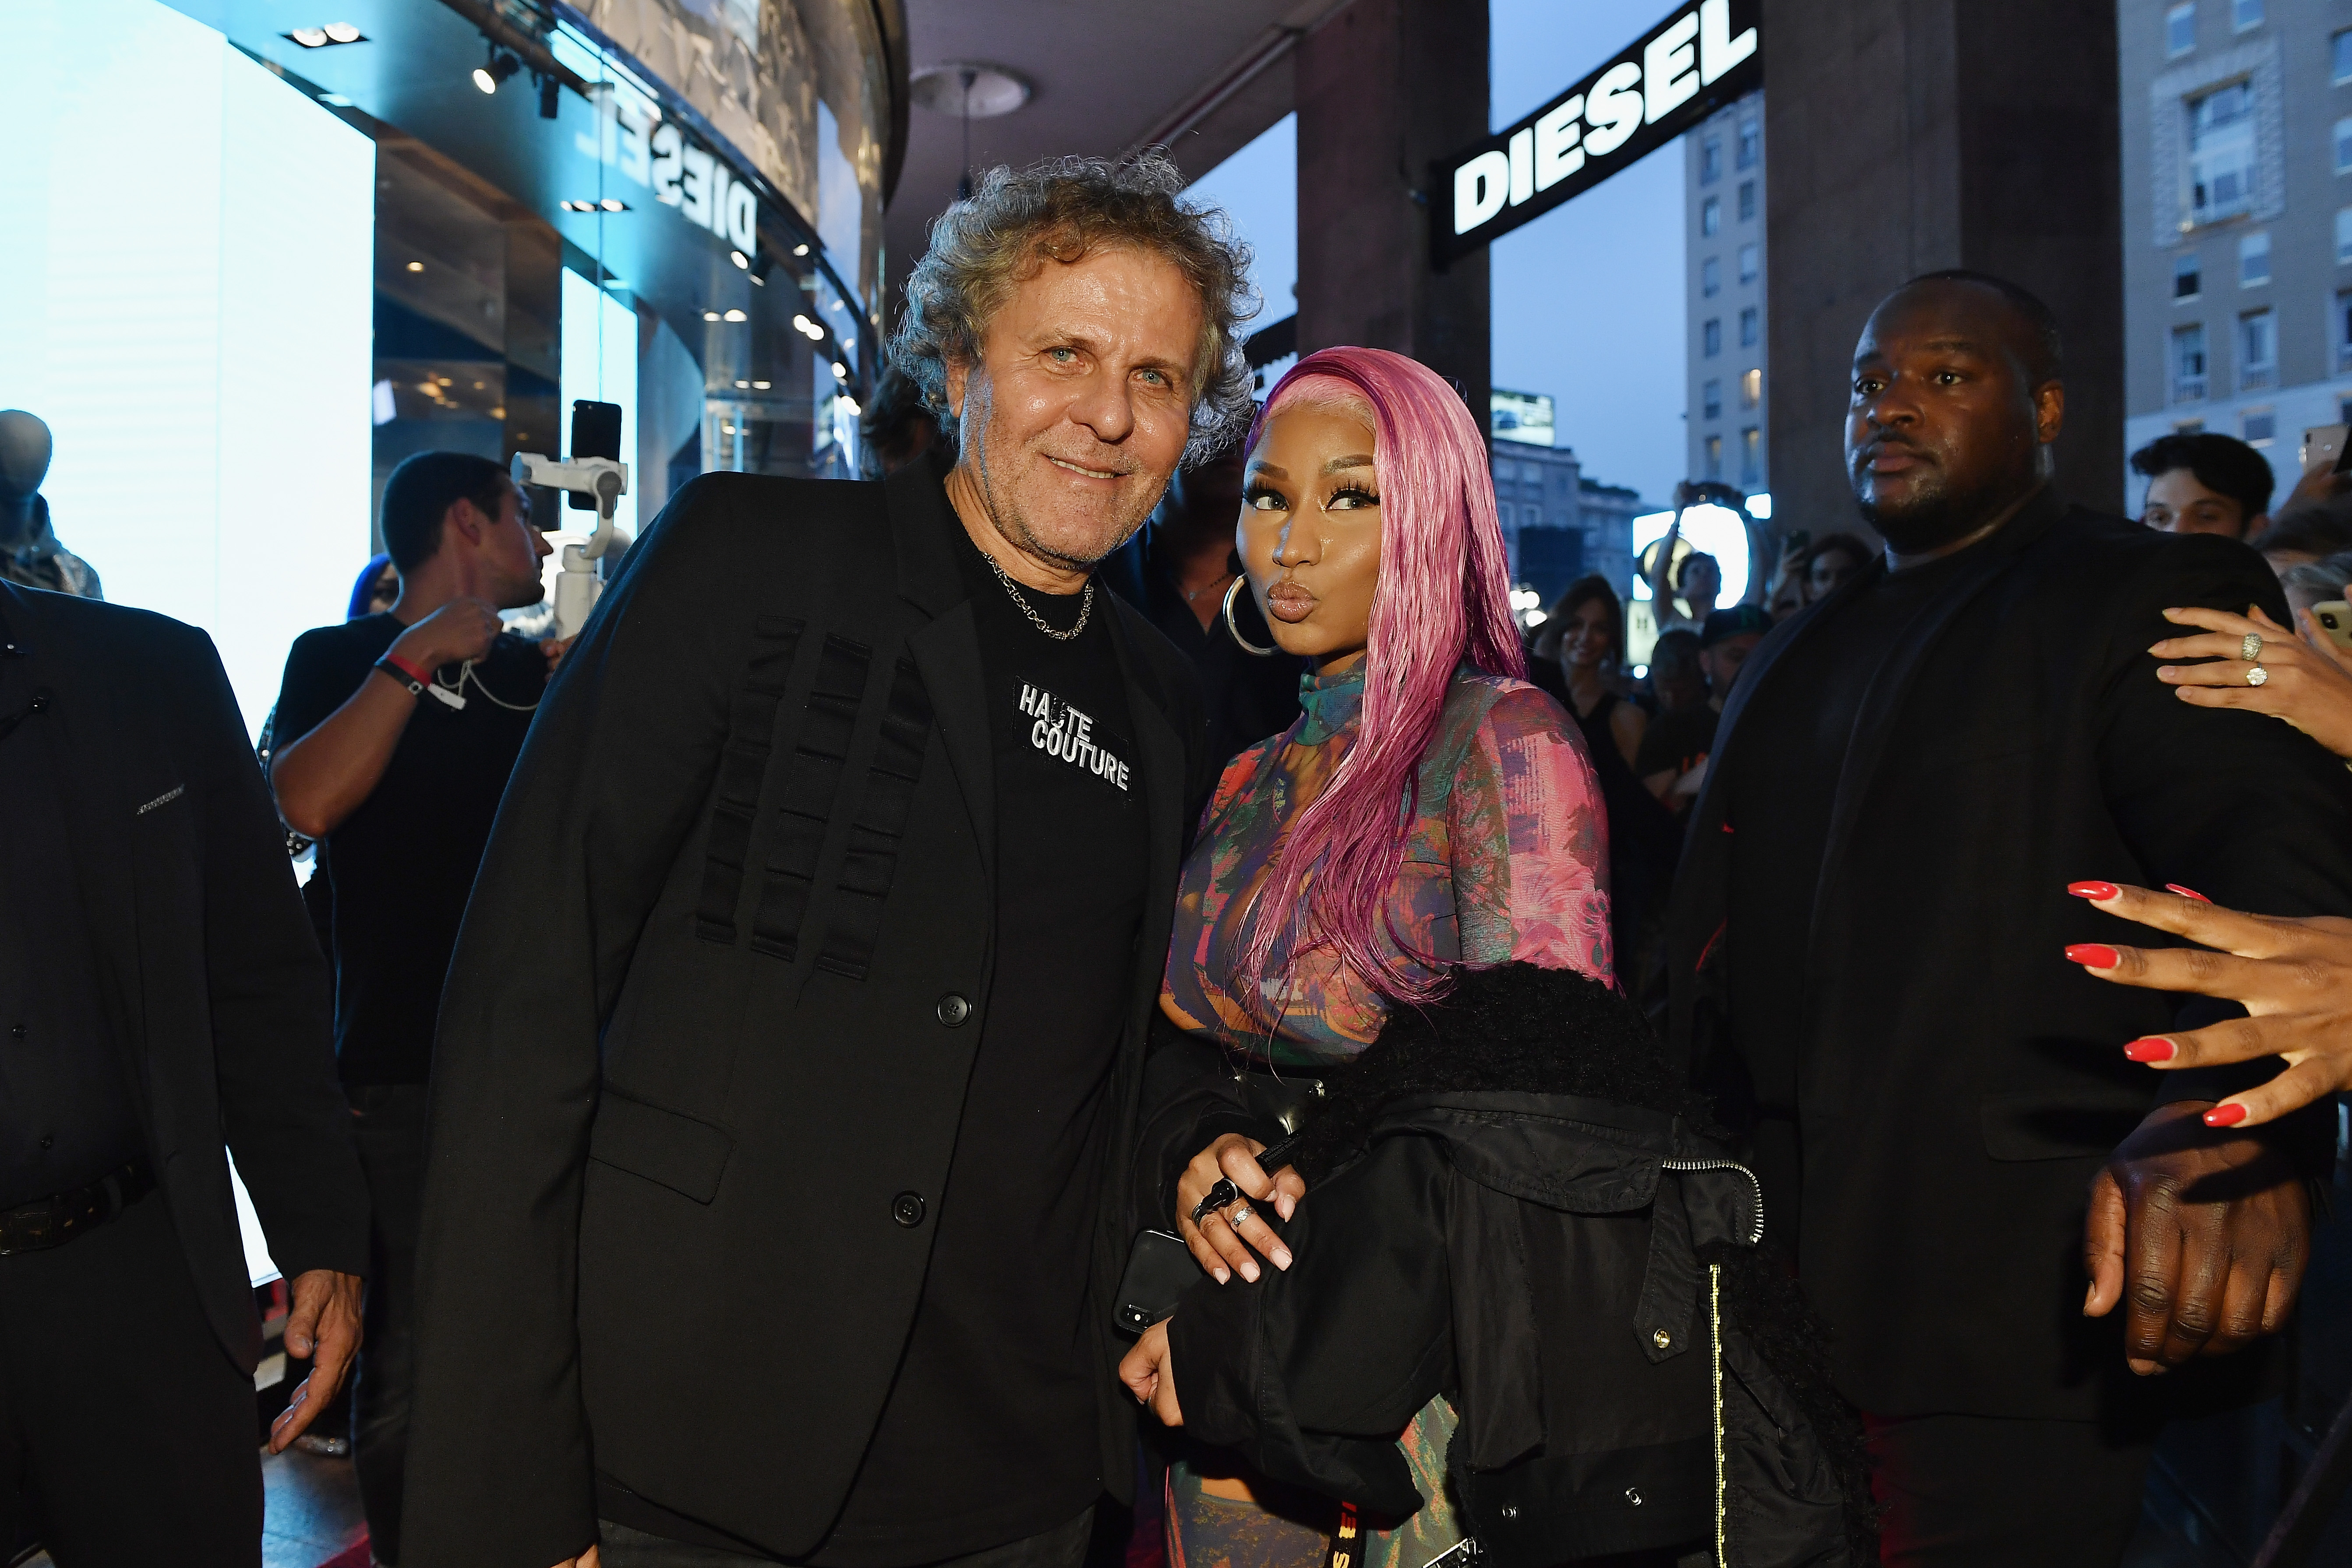 Renzo Rosso and Nicki Minaj attend Diesel Hate Couture on September 19, 2018 in Milan, Italy.